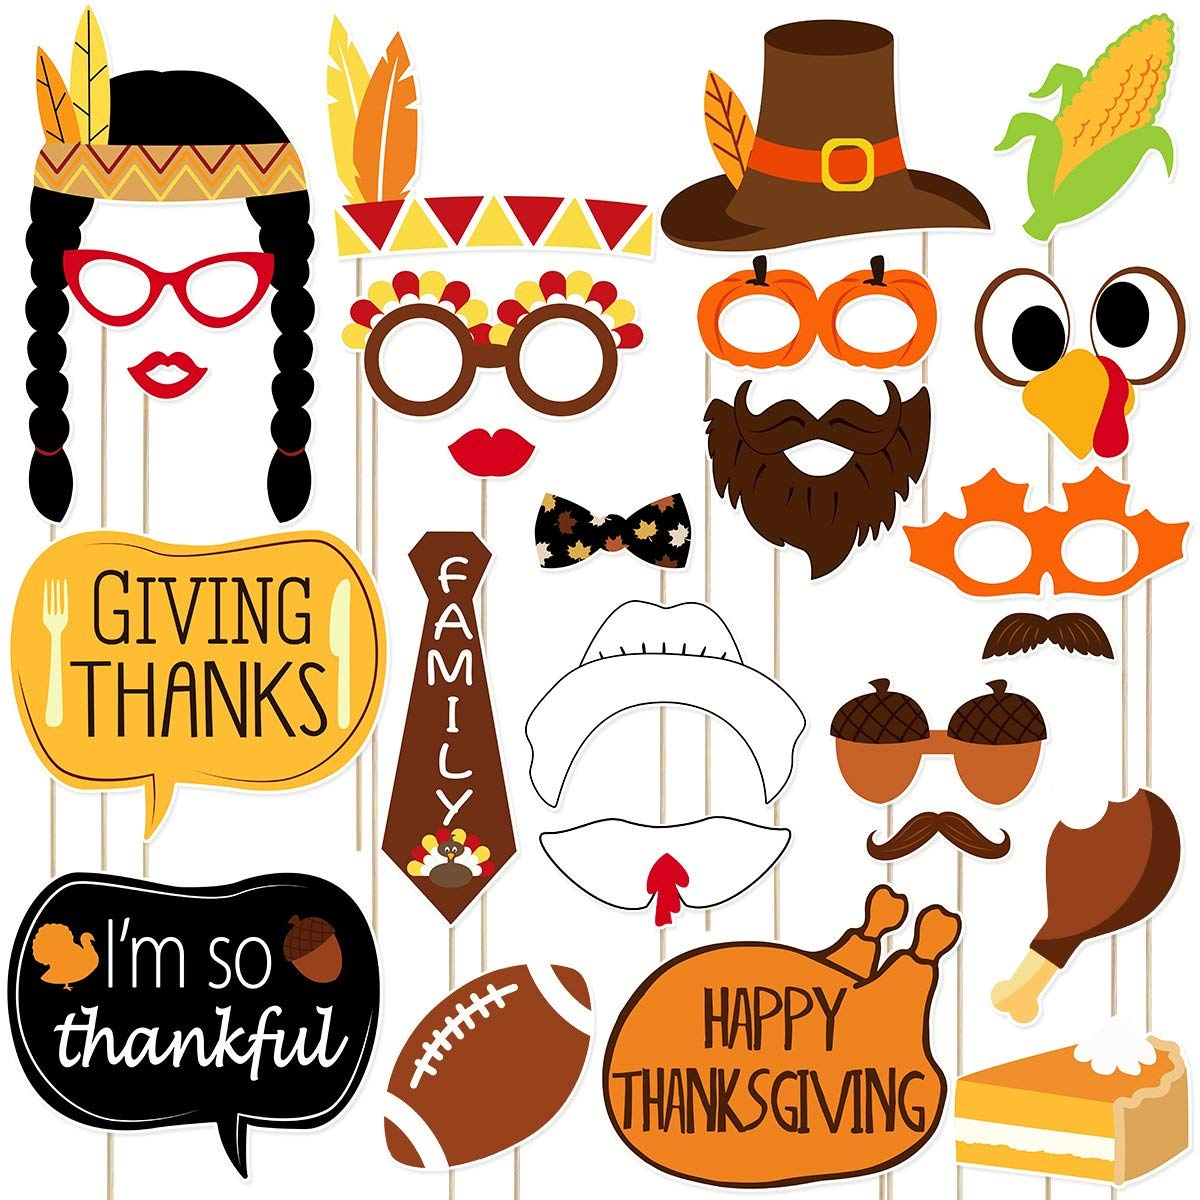 LUOEM Thanksgiving Day Photo Booth Props 25 Pieces Funny Turkey Day Kits DIY Selfie Props with Stick for Happy Thanksgiving Party Favors